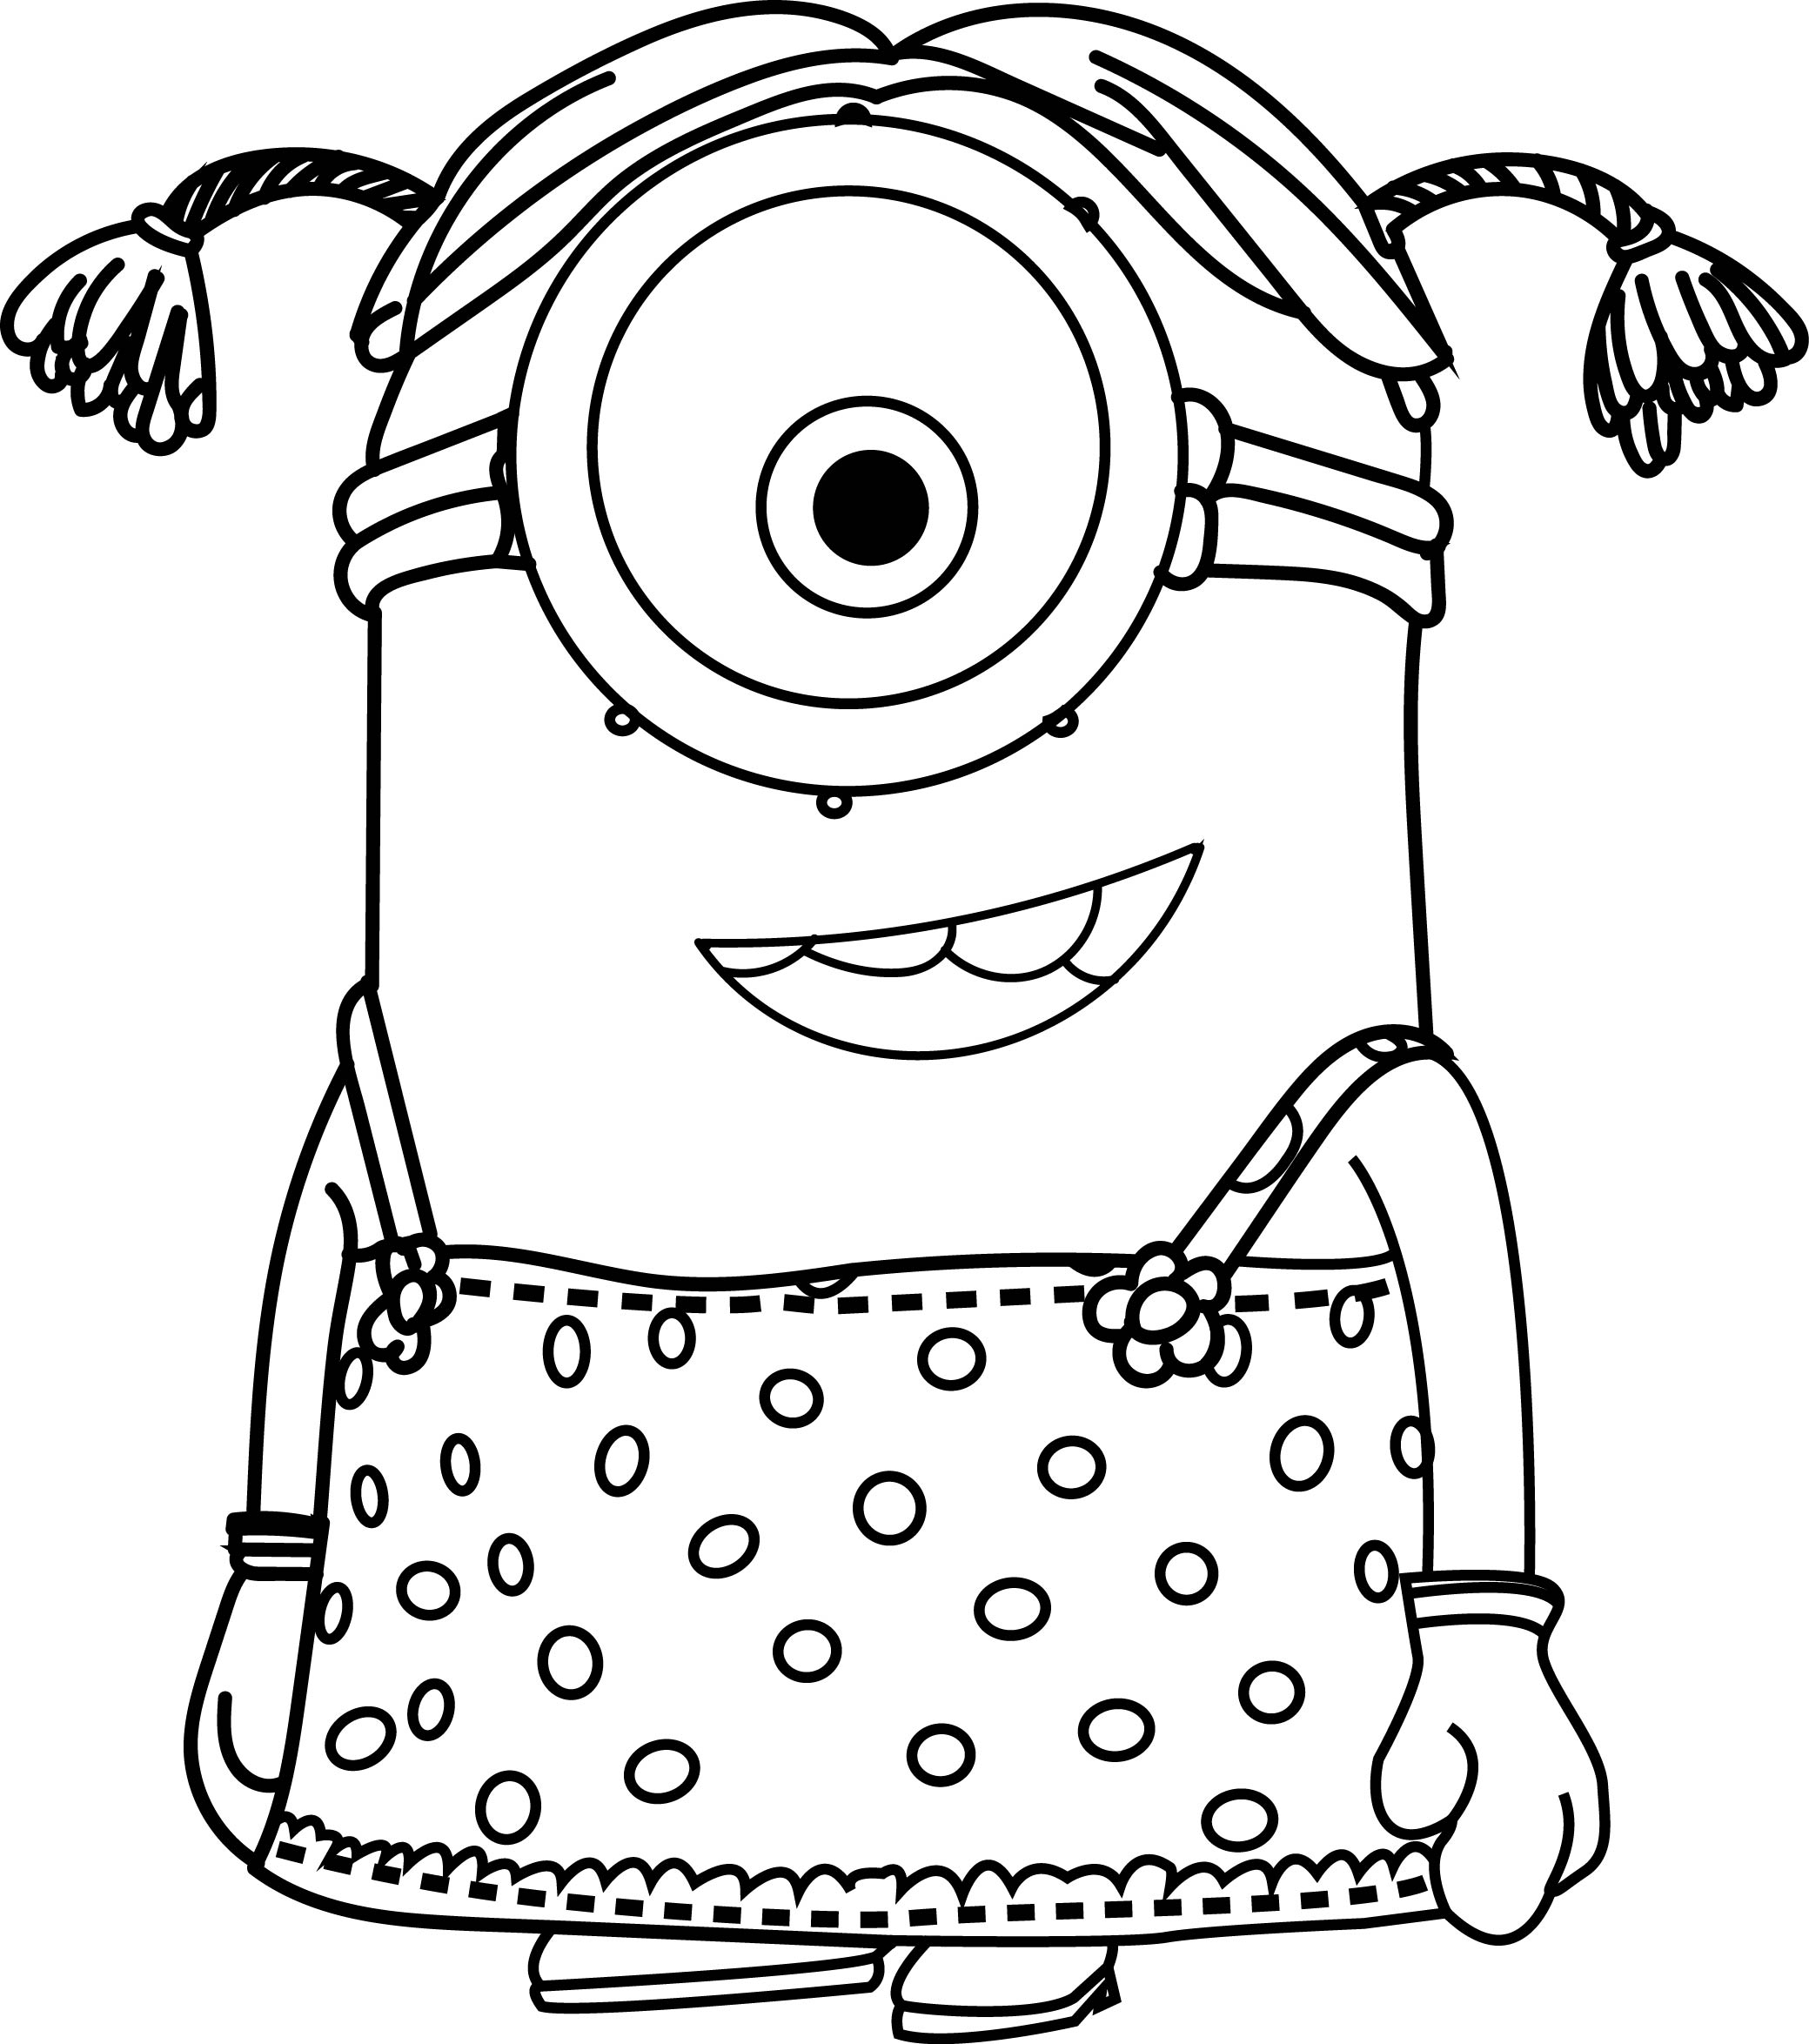 minion coloring kids n funcom 36 coloring pages of minions coloring minion